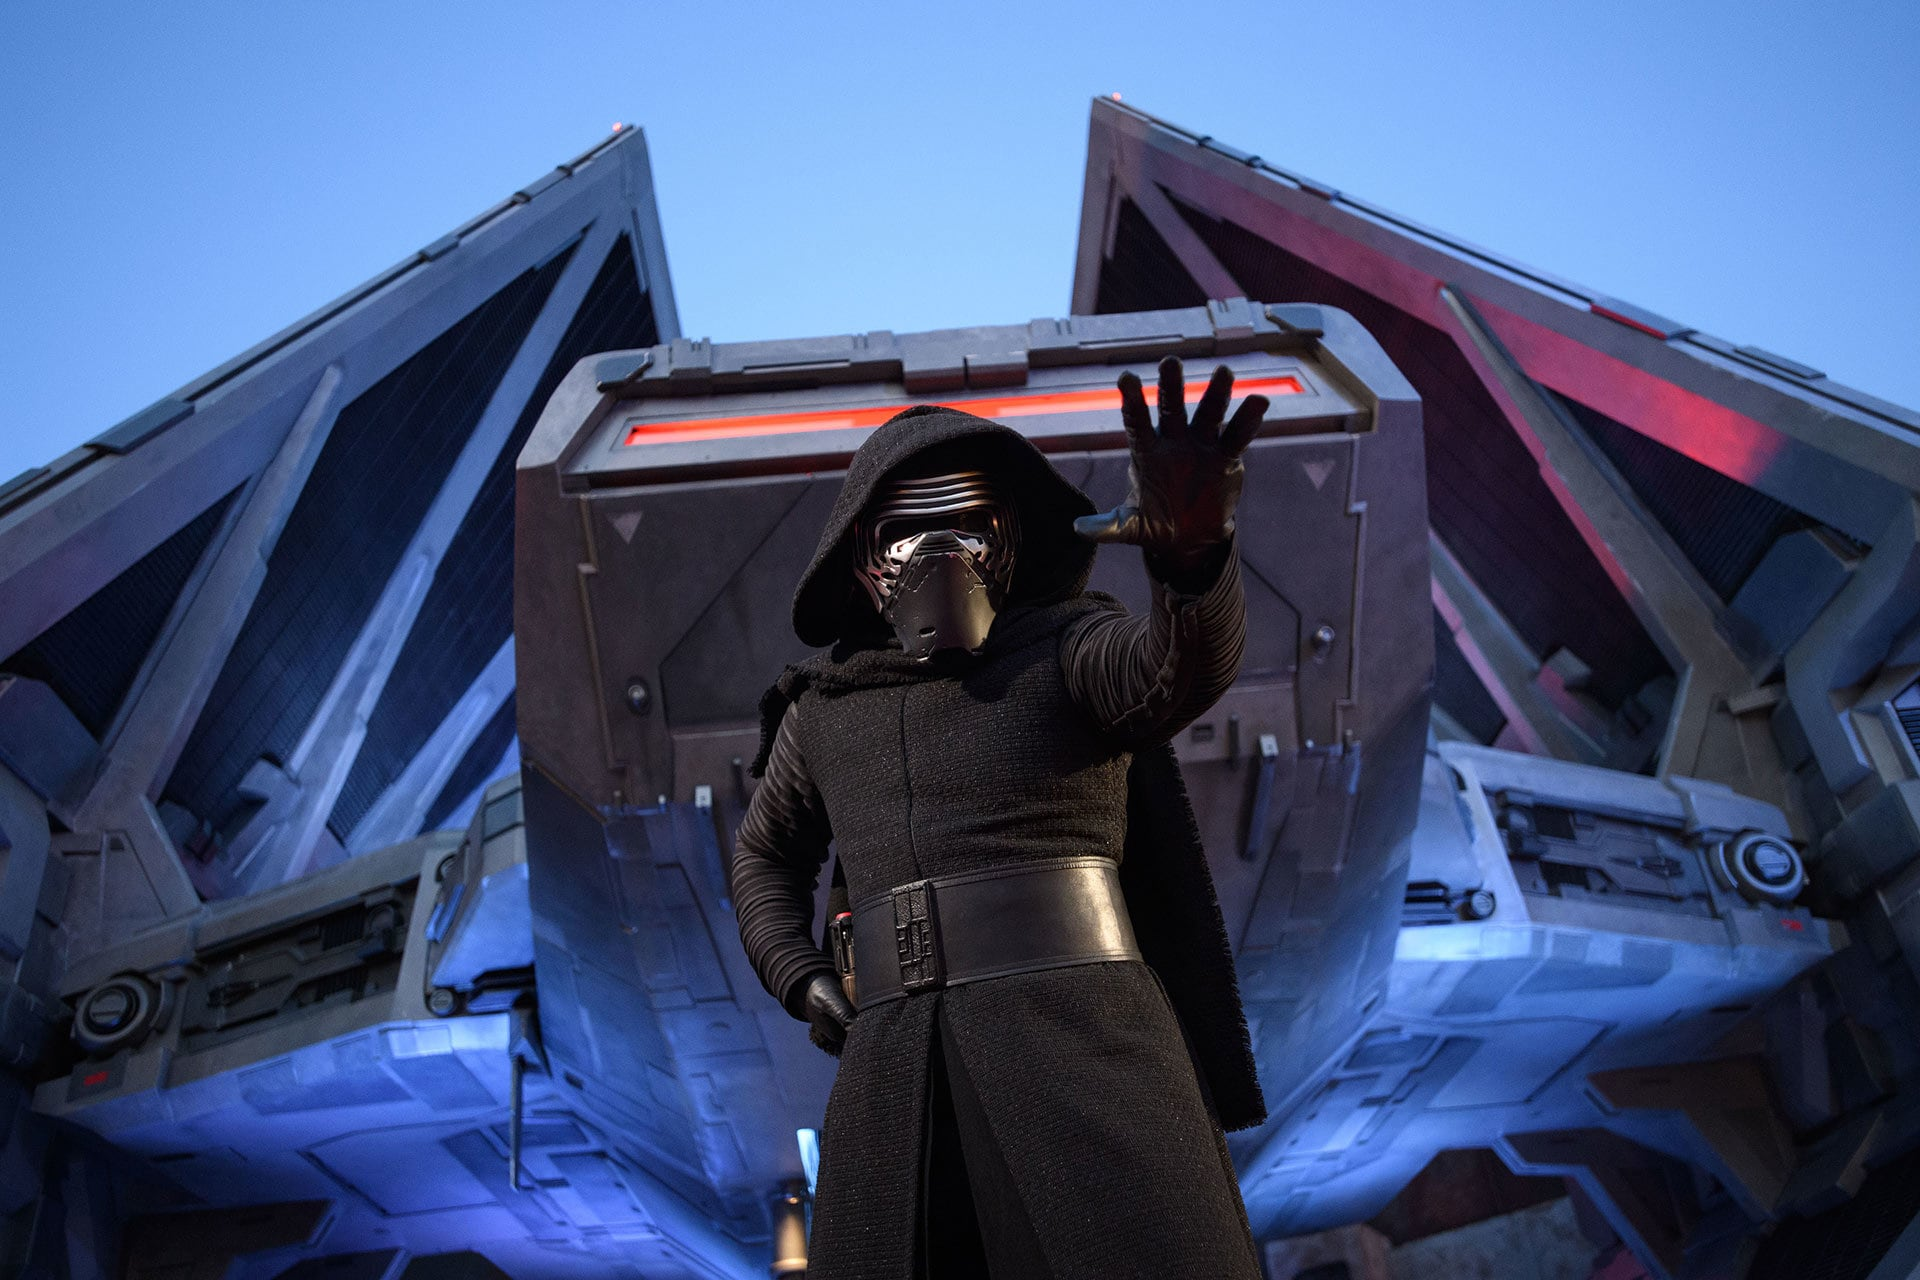 Kylo Ren casts an ominous shadow at Black Spire outpost.